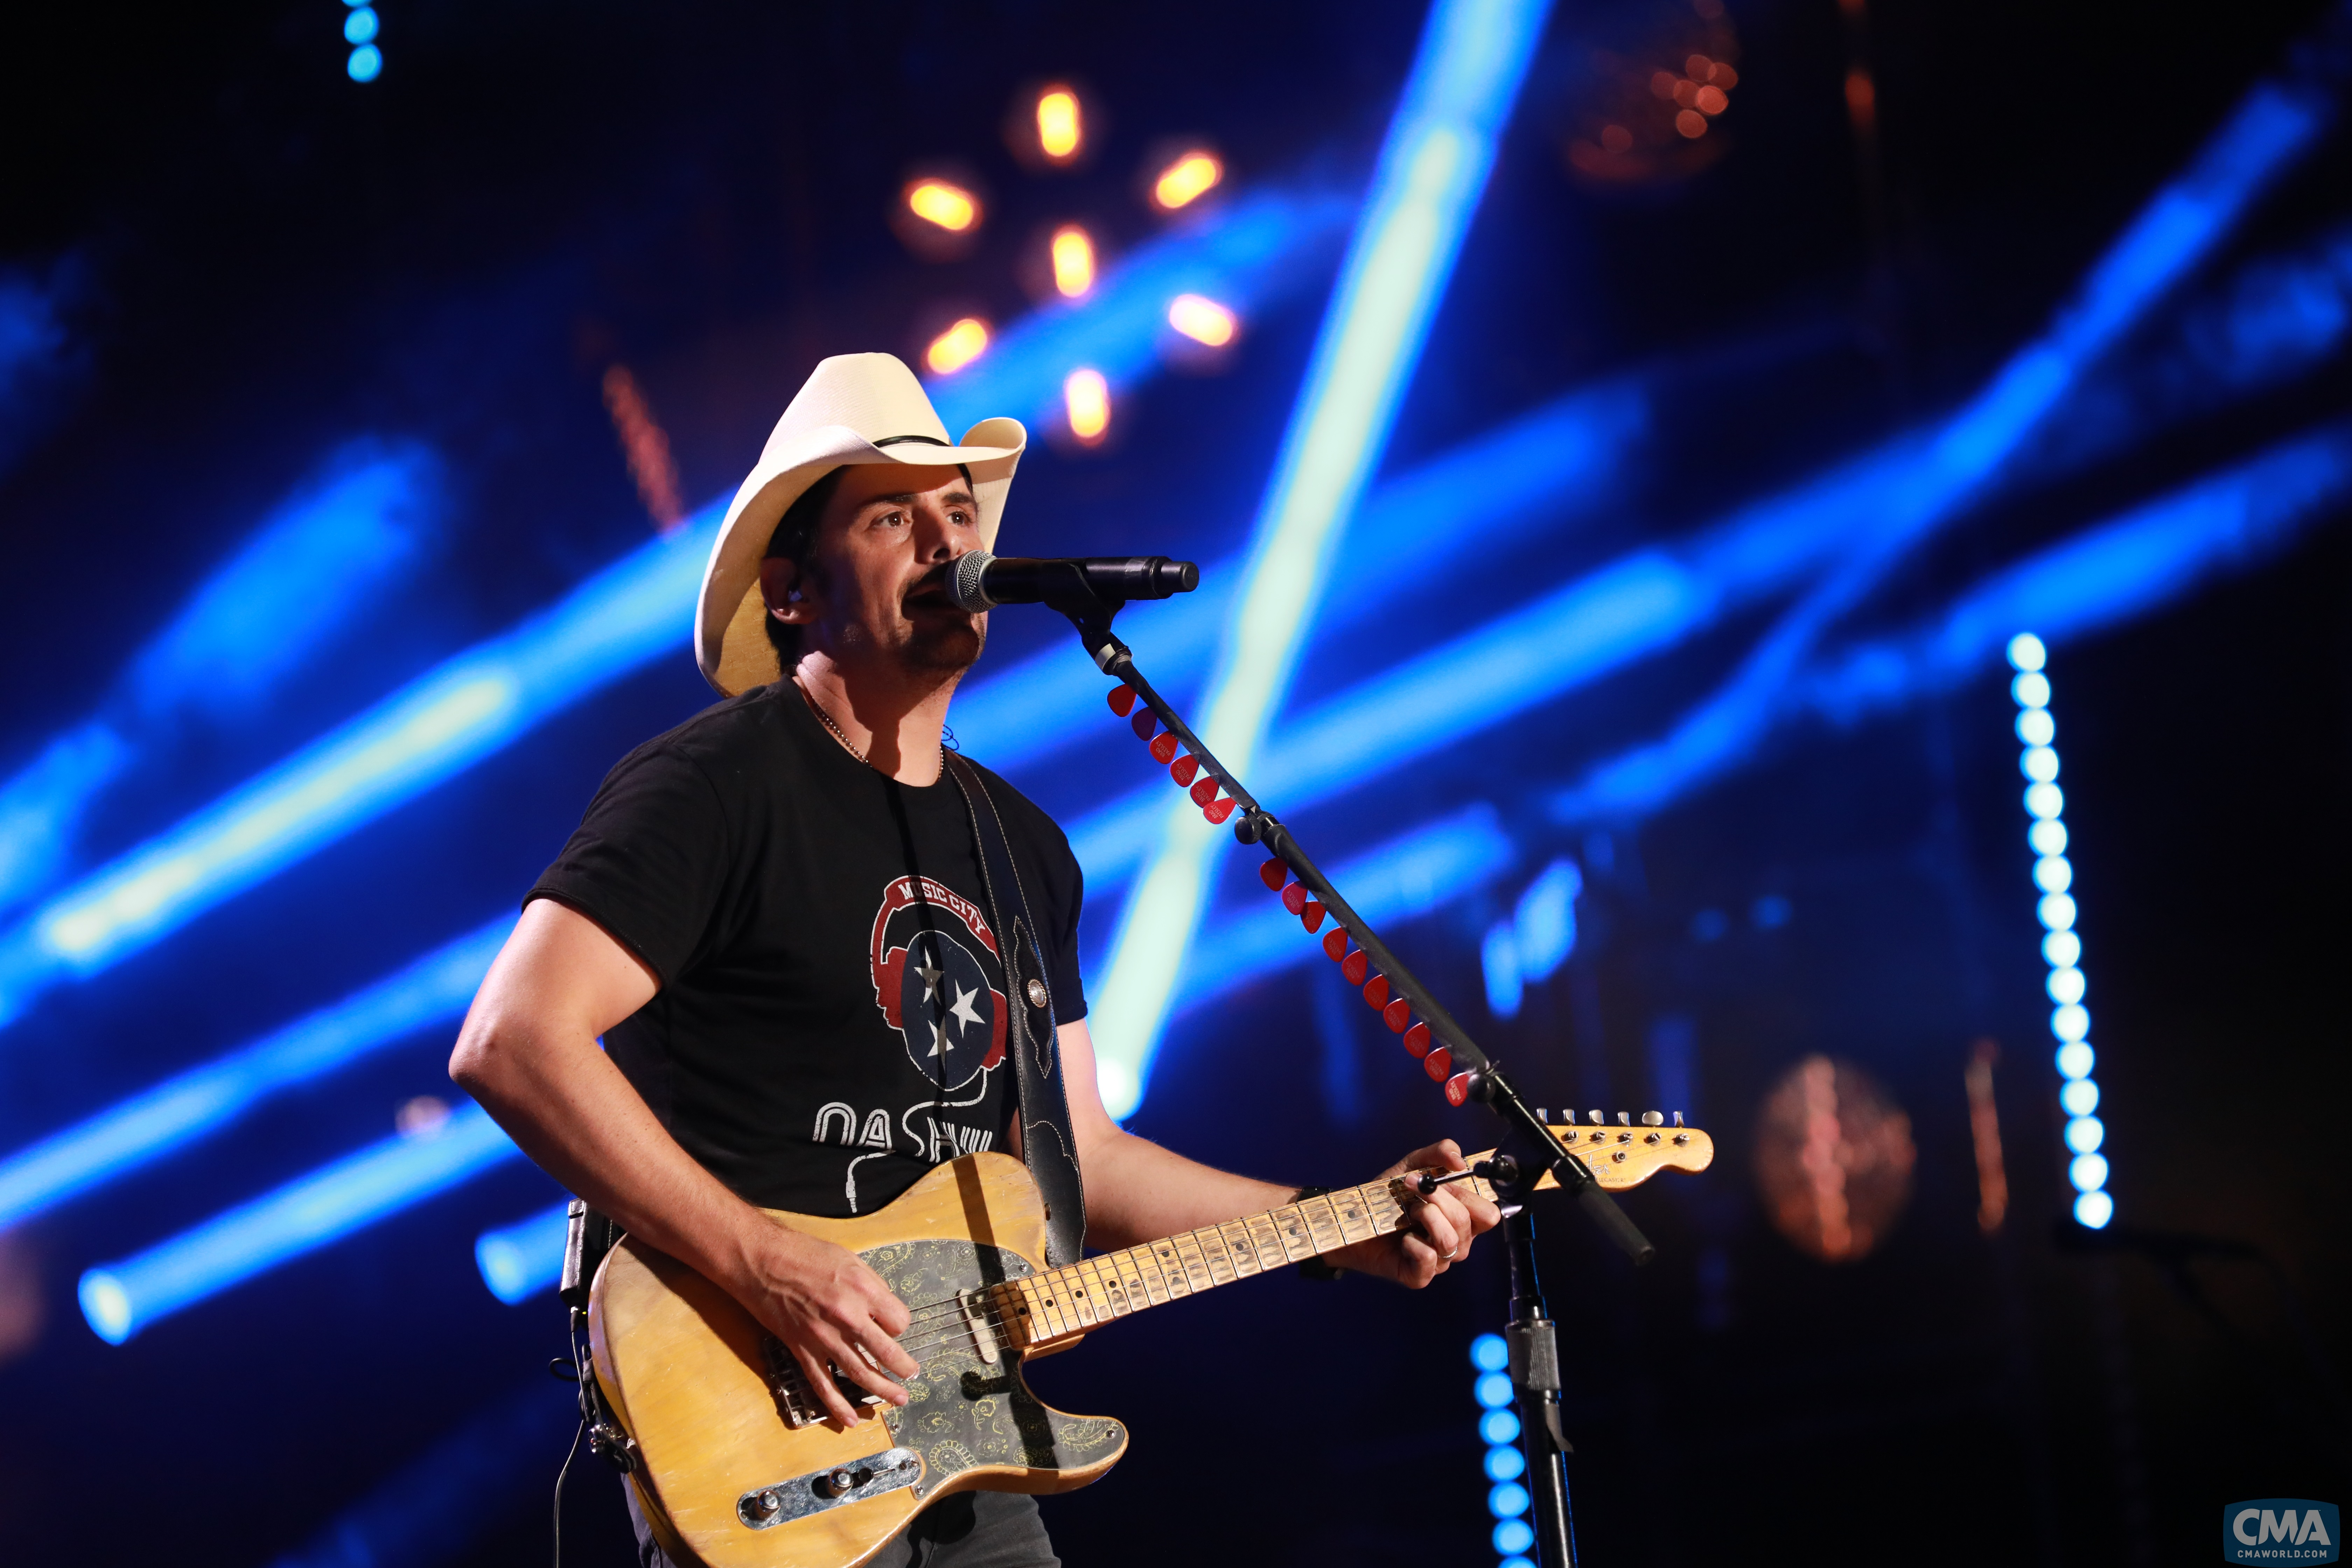 Brad Paisley, Lady Antebellum and More to Perform at 'Fourth of July Fireworks Spectacular'